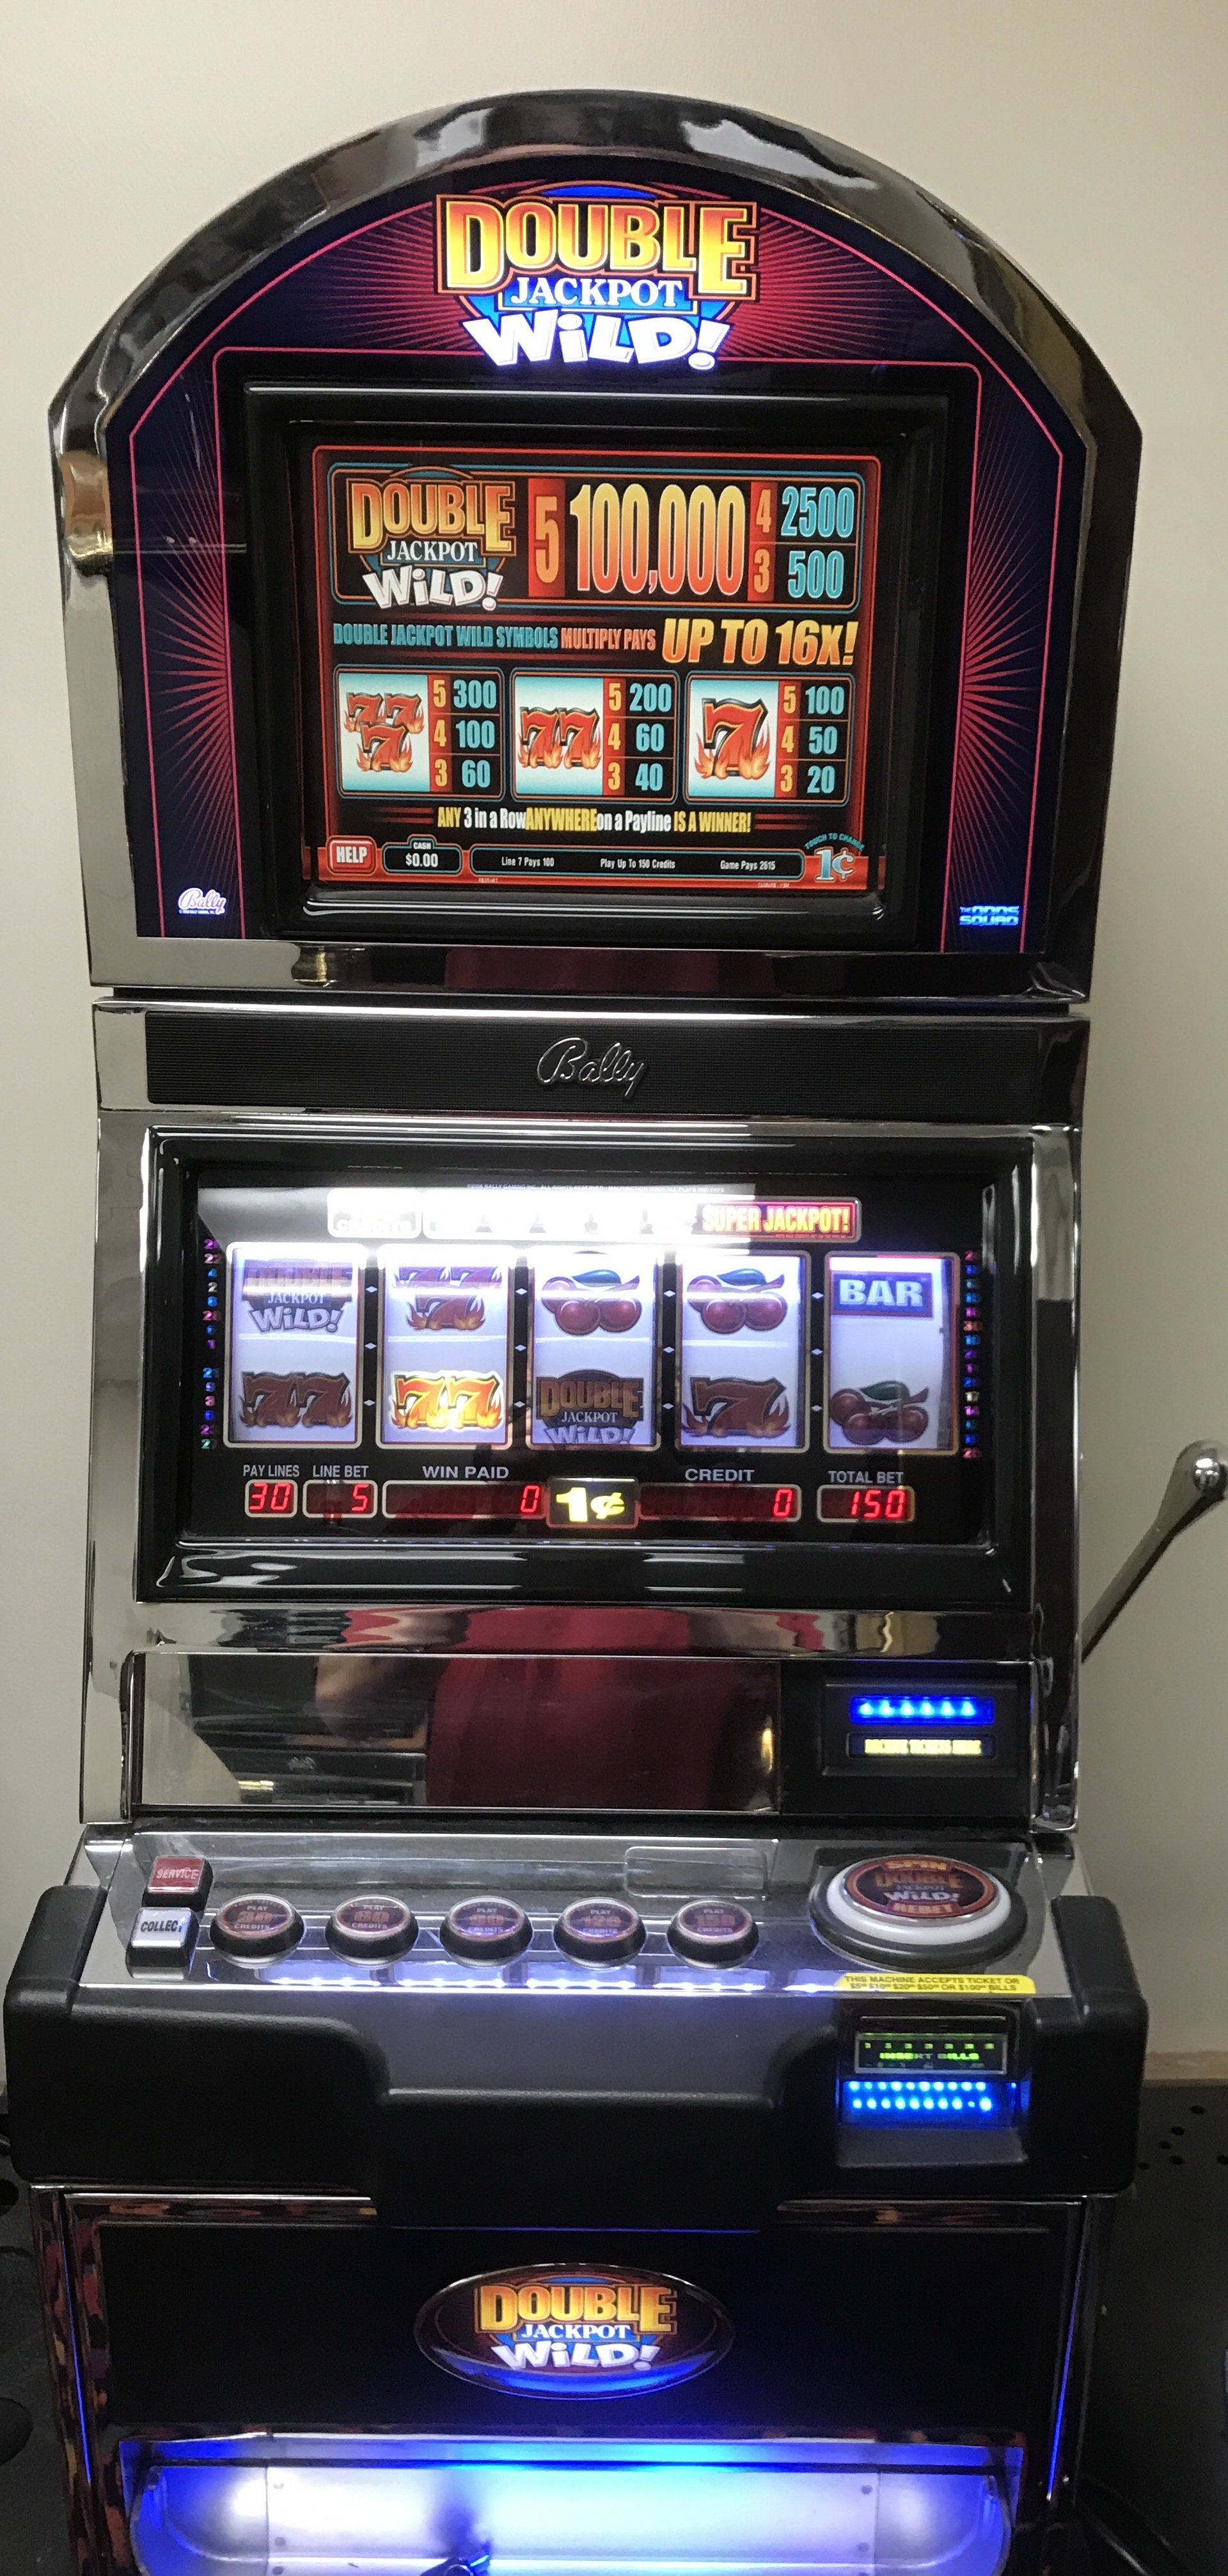 double jackpot wild slot machines unlimited. Black Bedroom Furniture Sets. Home Design Ideas